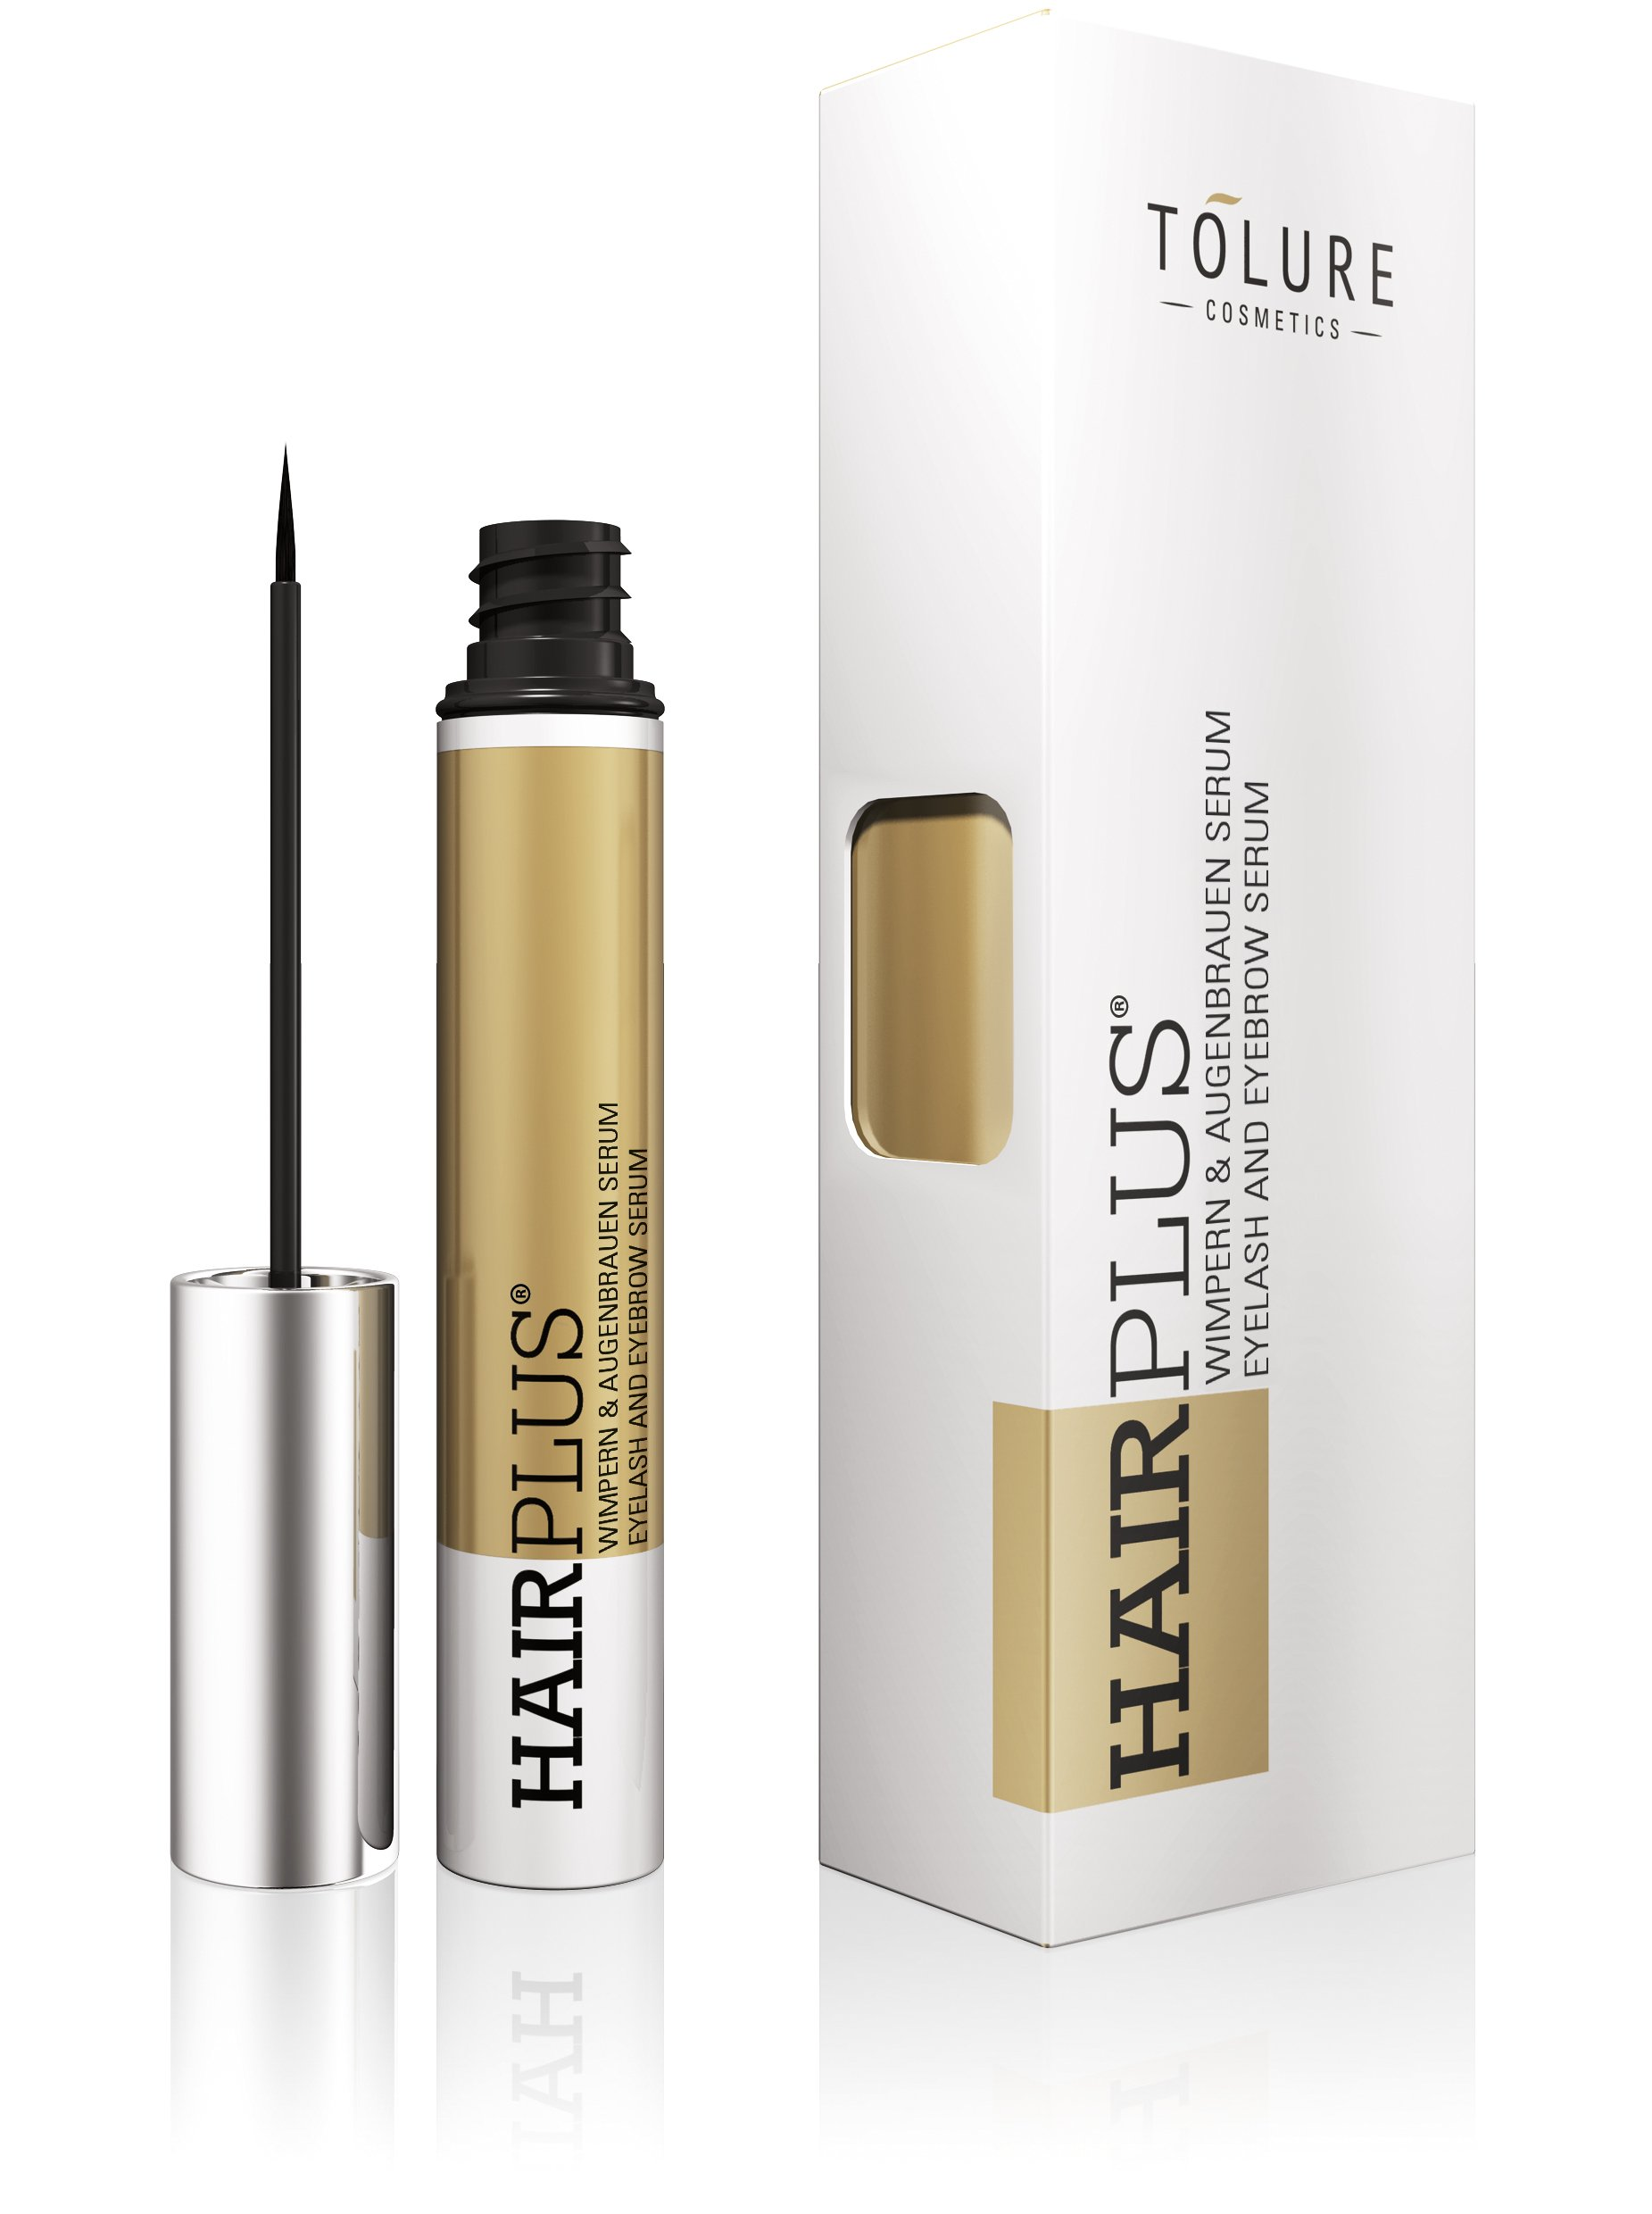 Tolure Cosmetics Hairplus Suero de 2-in-1 para las Pestañas y las Cejas – 3 ml